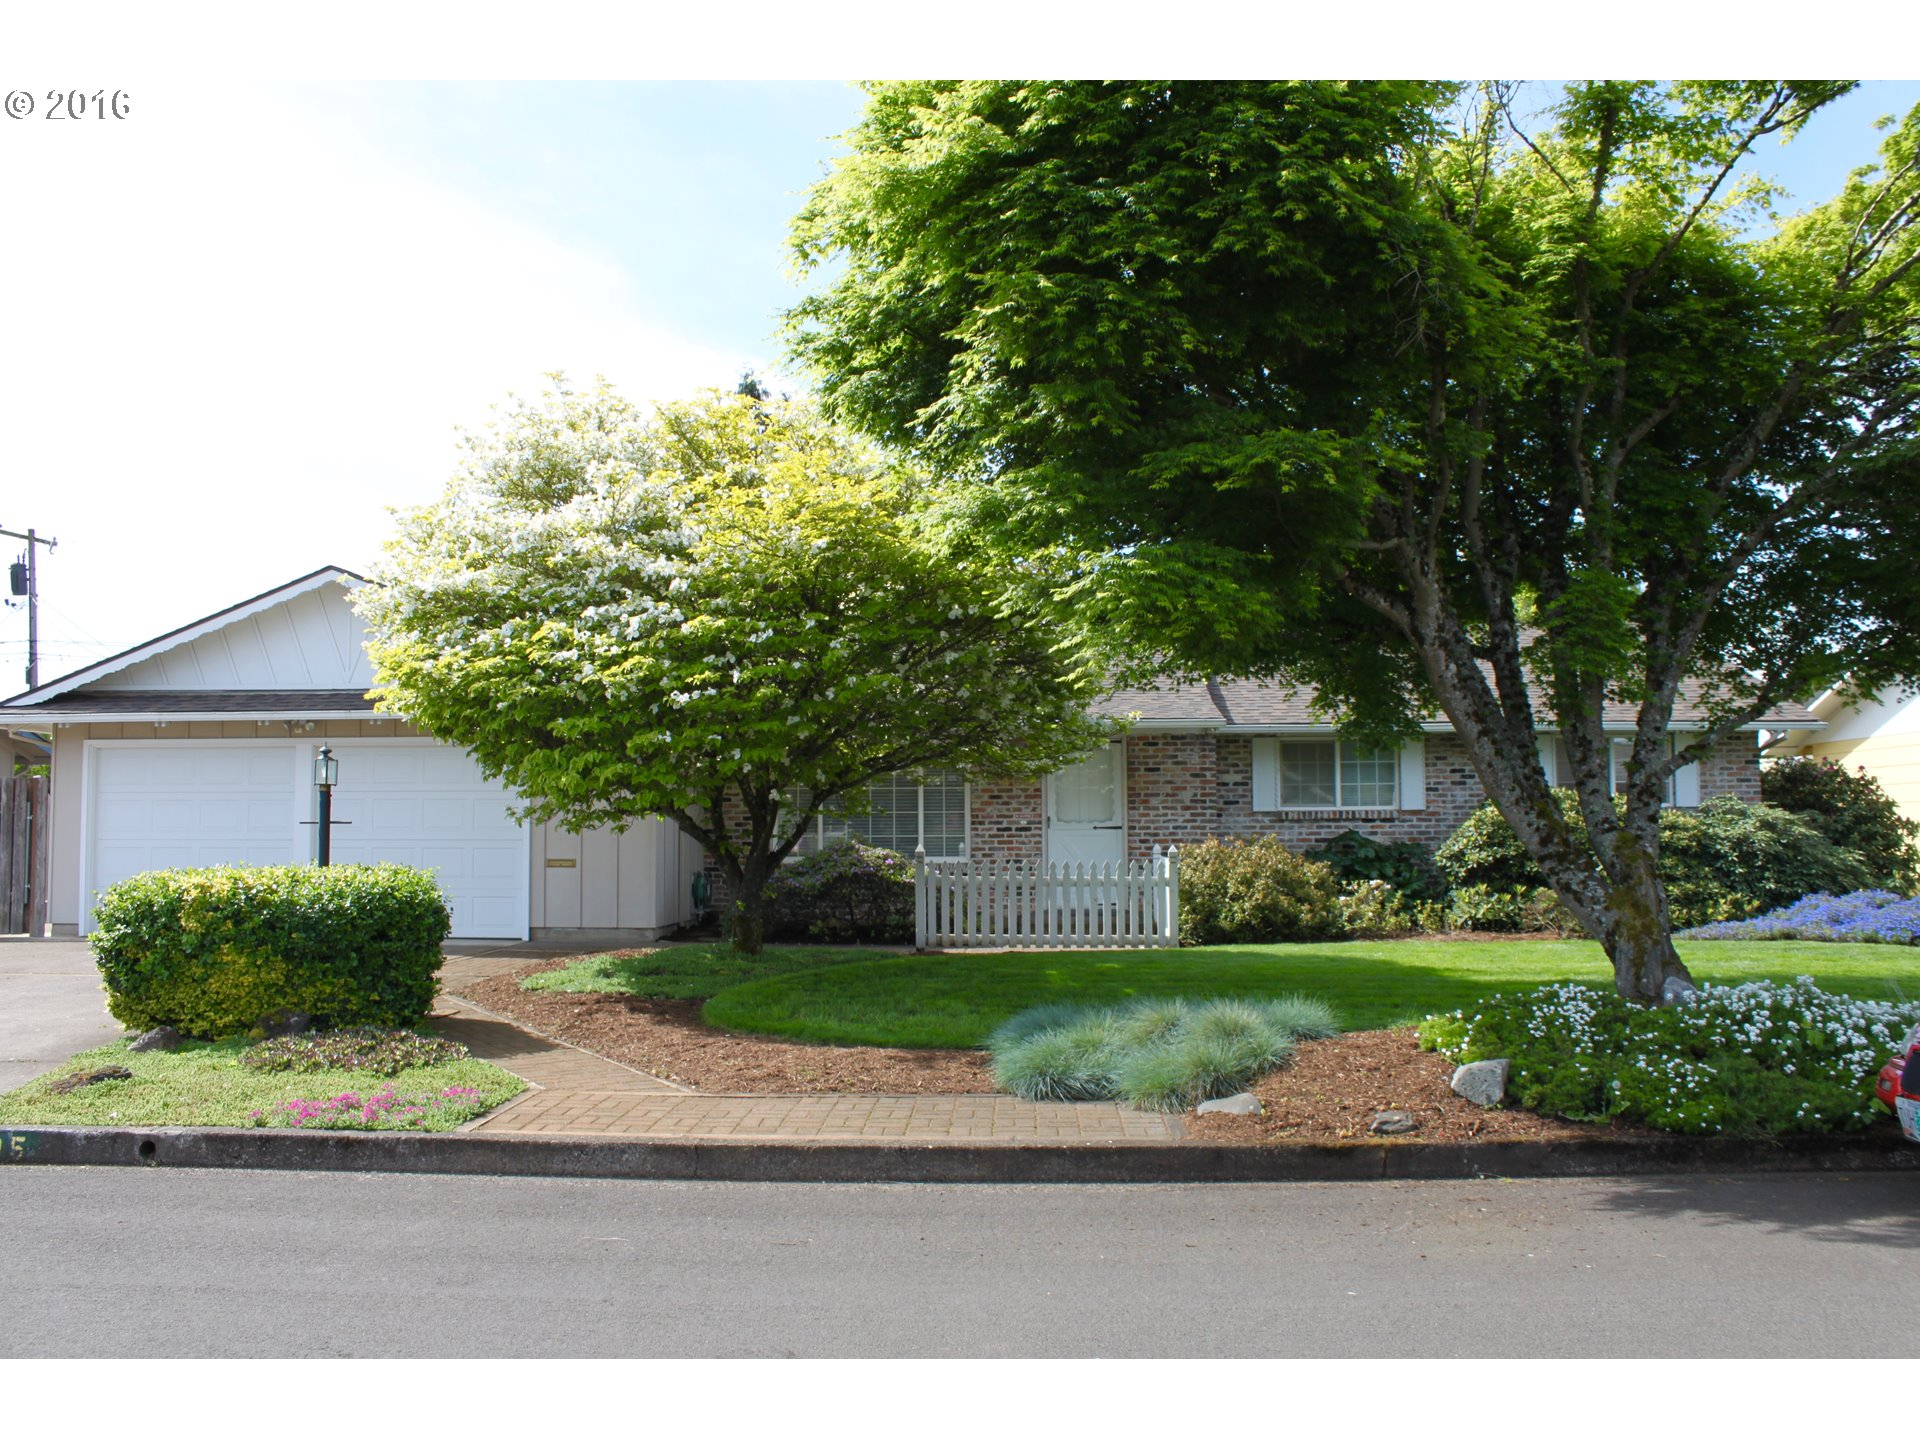 405 Mansfield St, Springfield, OR